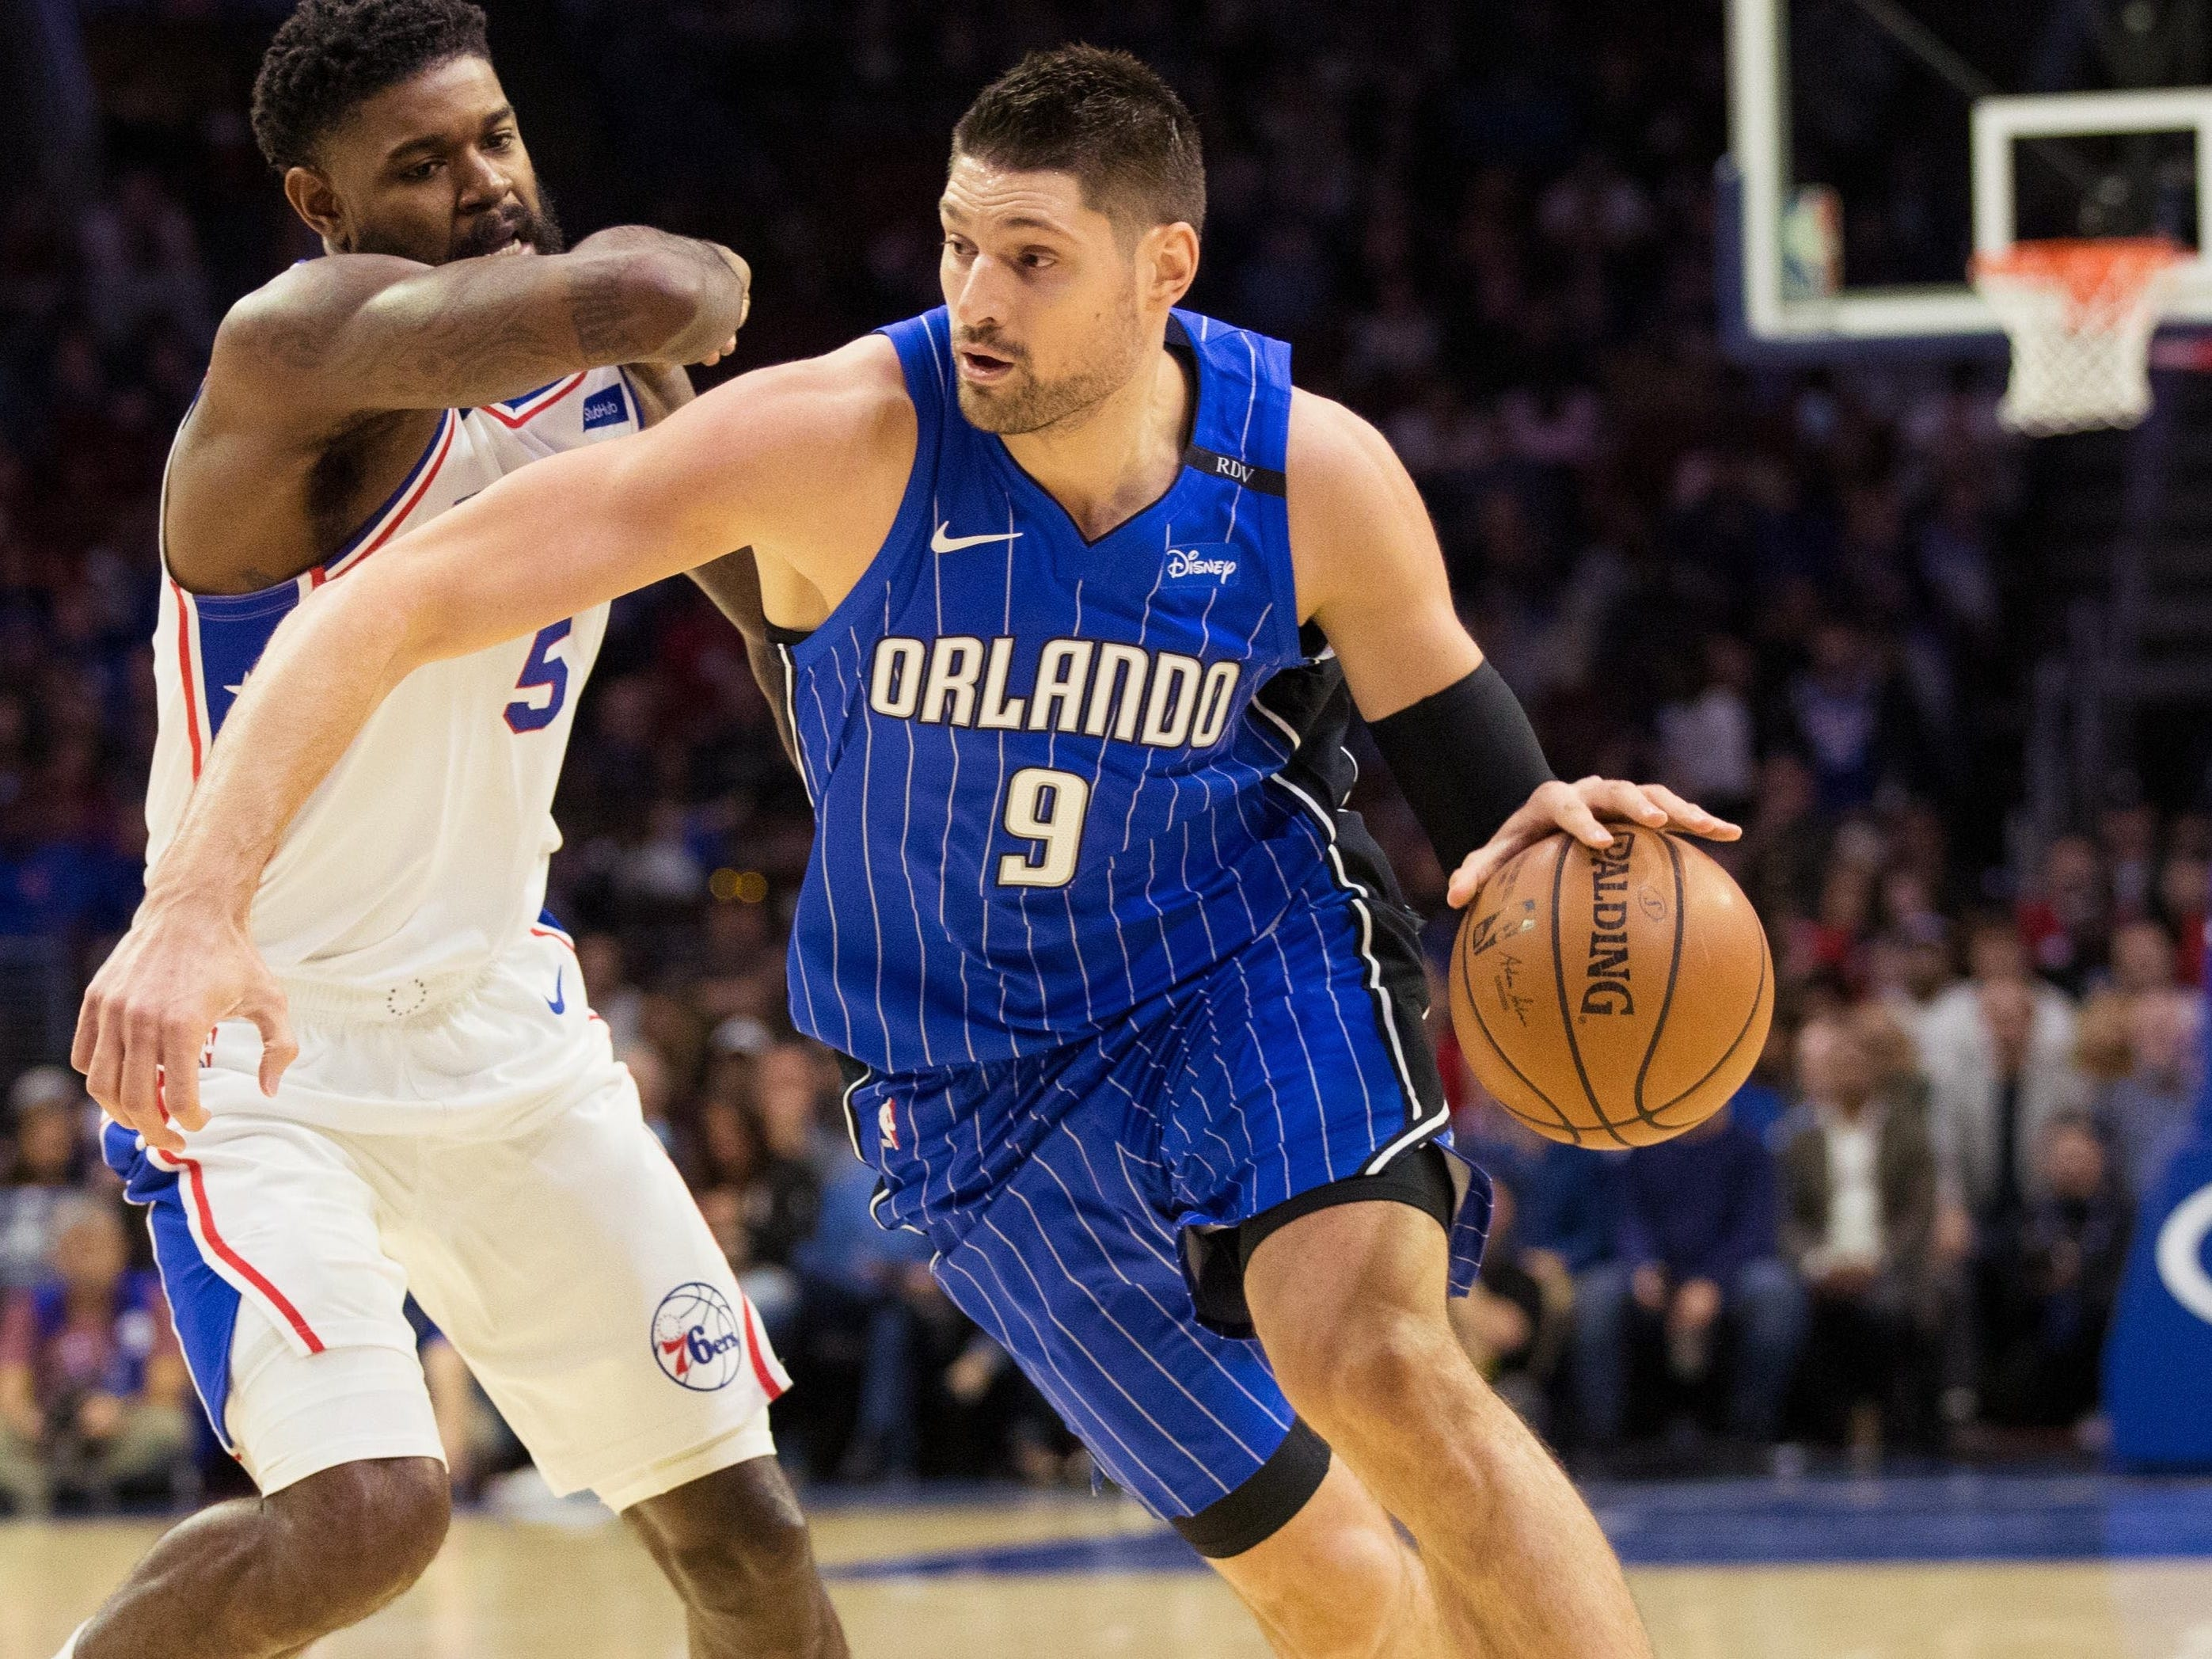 3. Nikola Vucevic, Magic (Oct. 20): 27 points, 13 rebounds, 12 assists in 116-115 loss to 76ers.